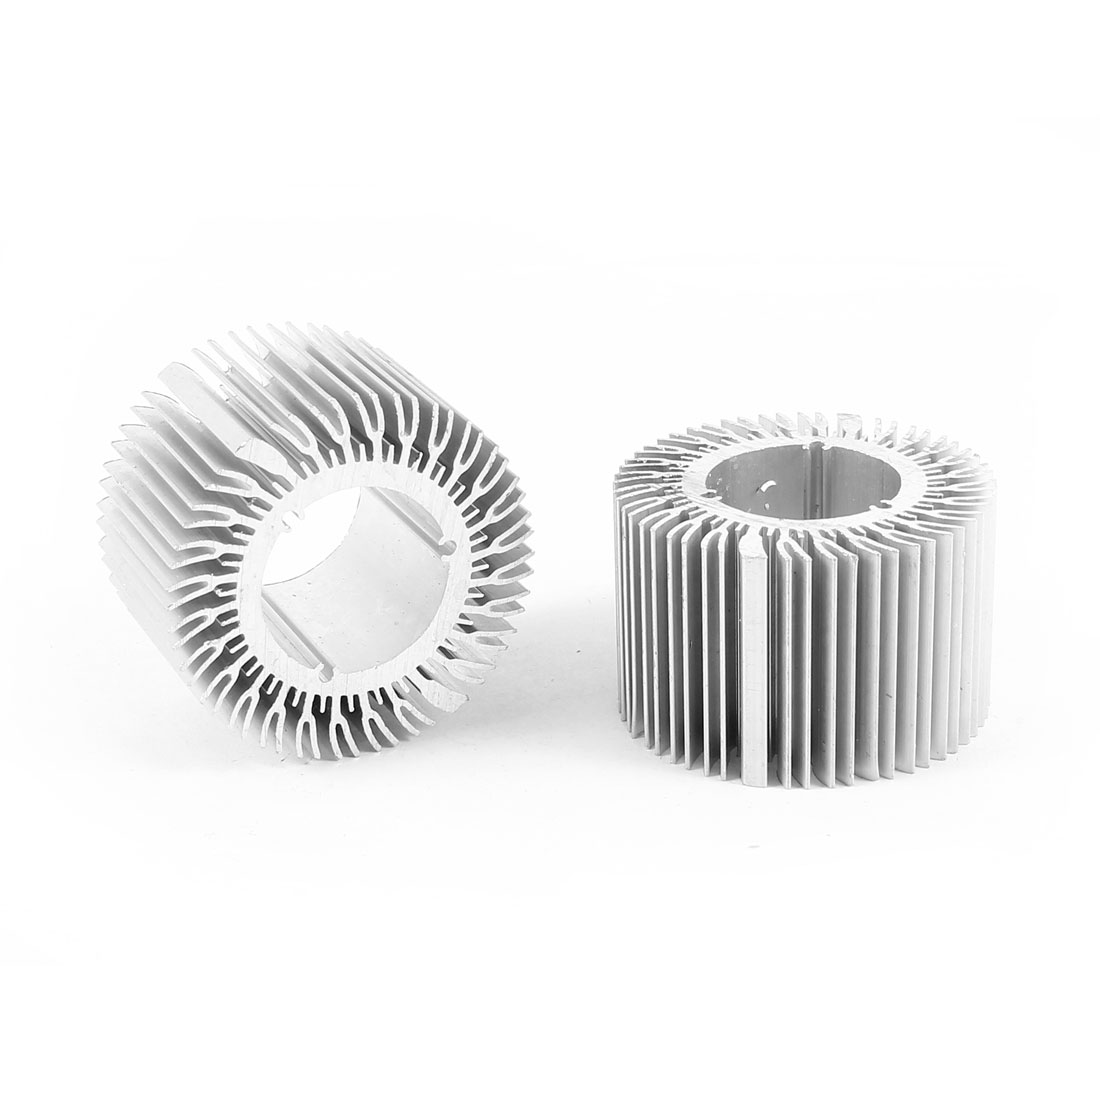 2 Pcs Round Shaped 48mm OD 24mm ID 30mm Height LED Light Heat Sinks Cooling Fin